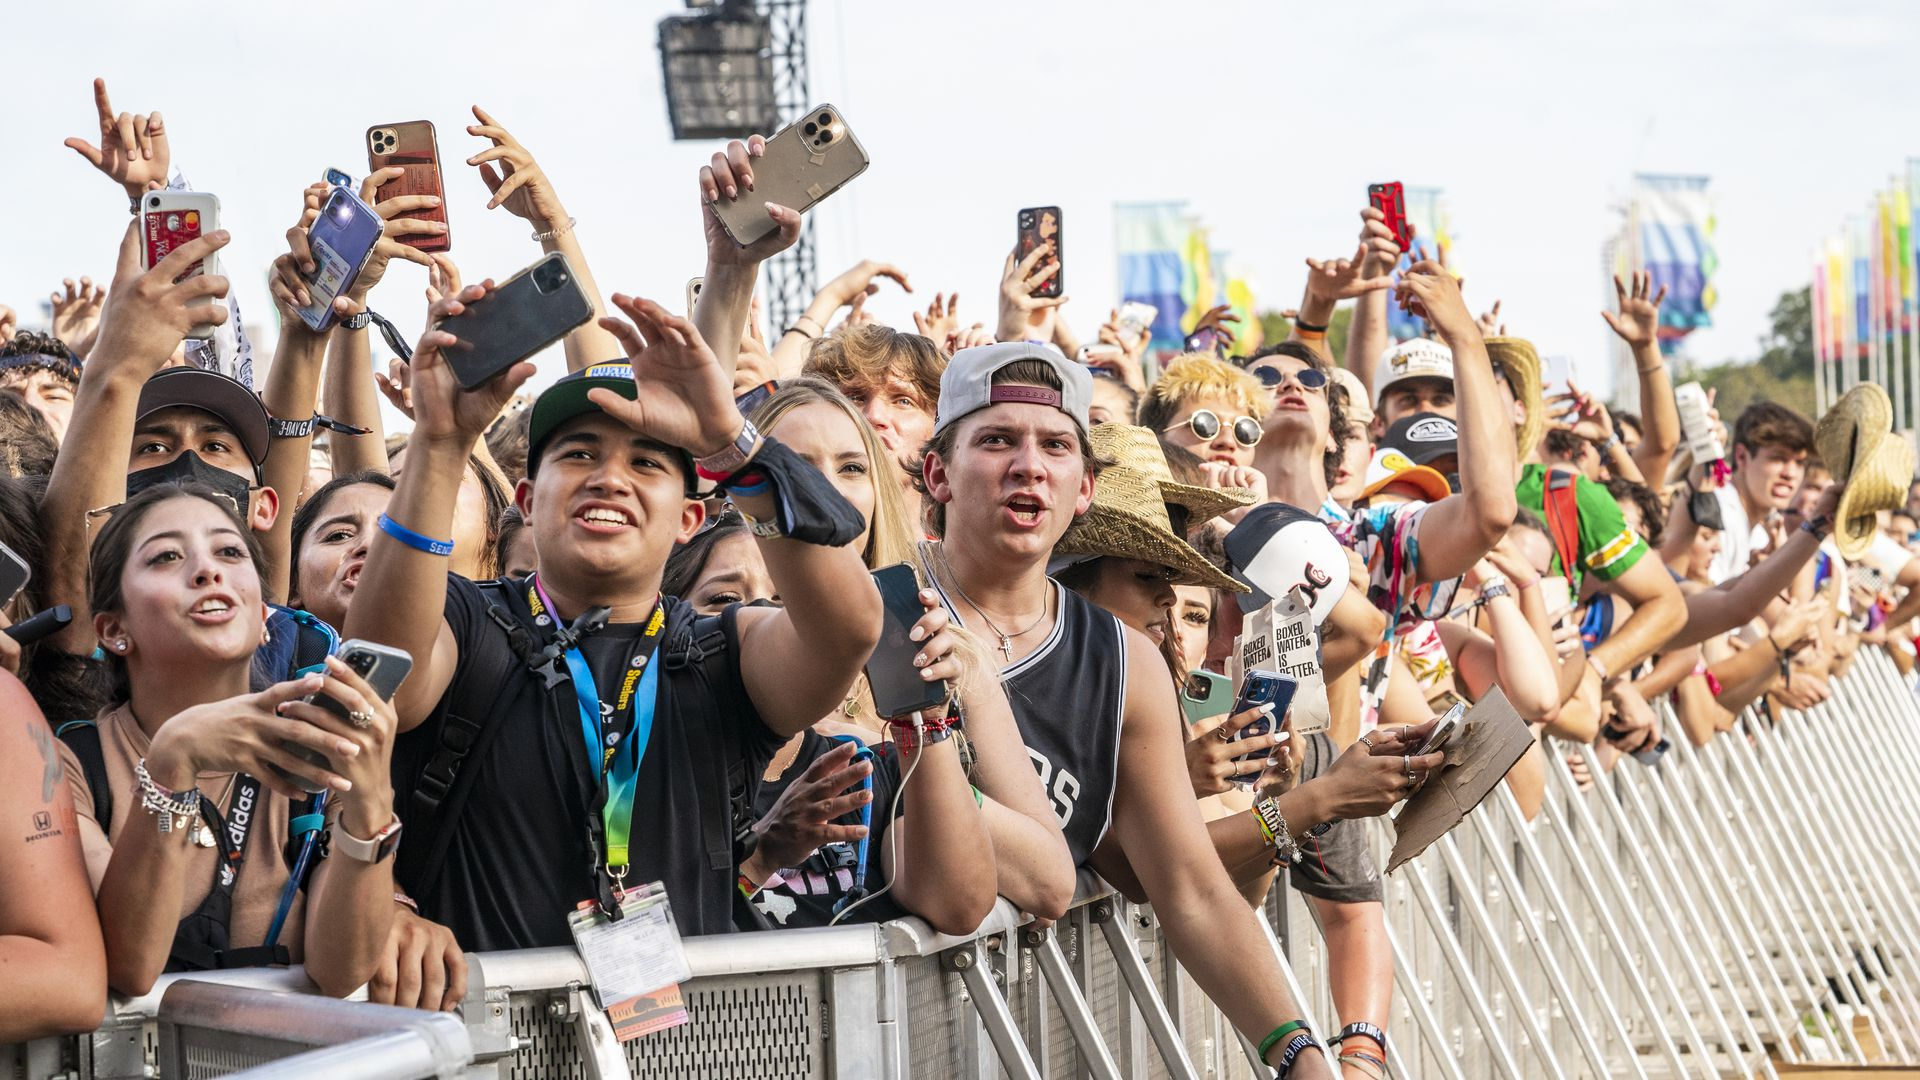 A crowd stands behind a barricade at Austin City Limits music festival